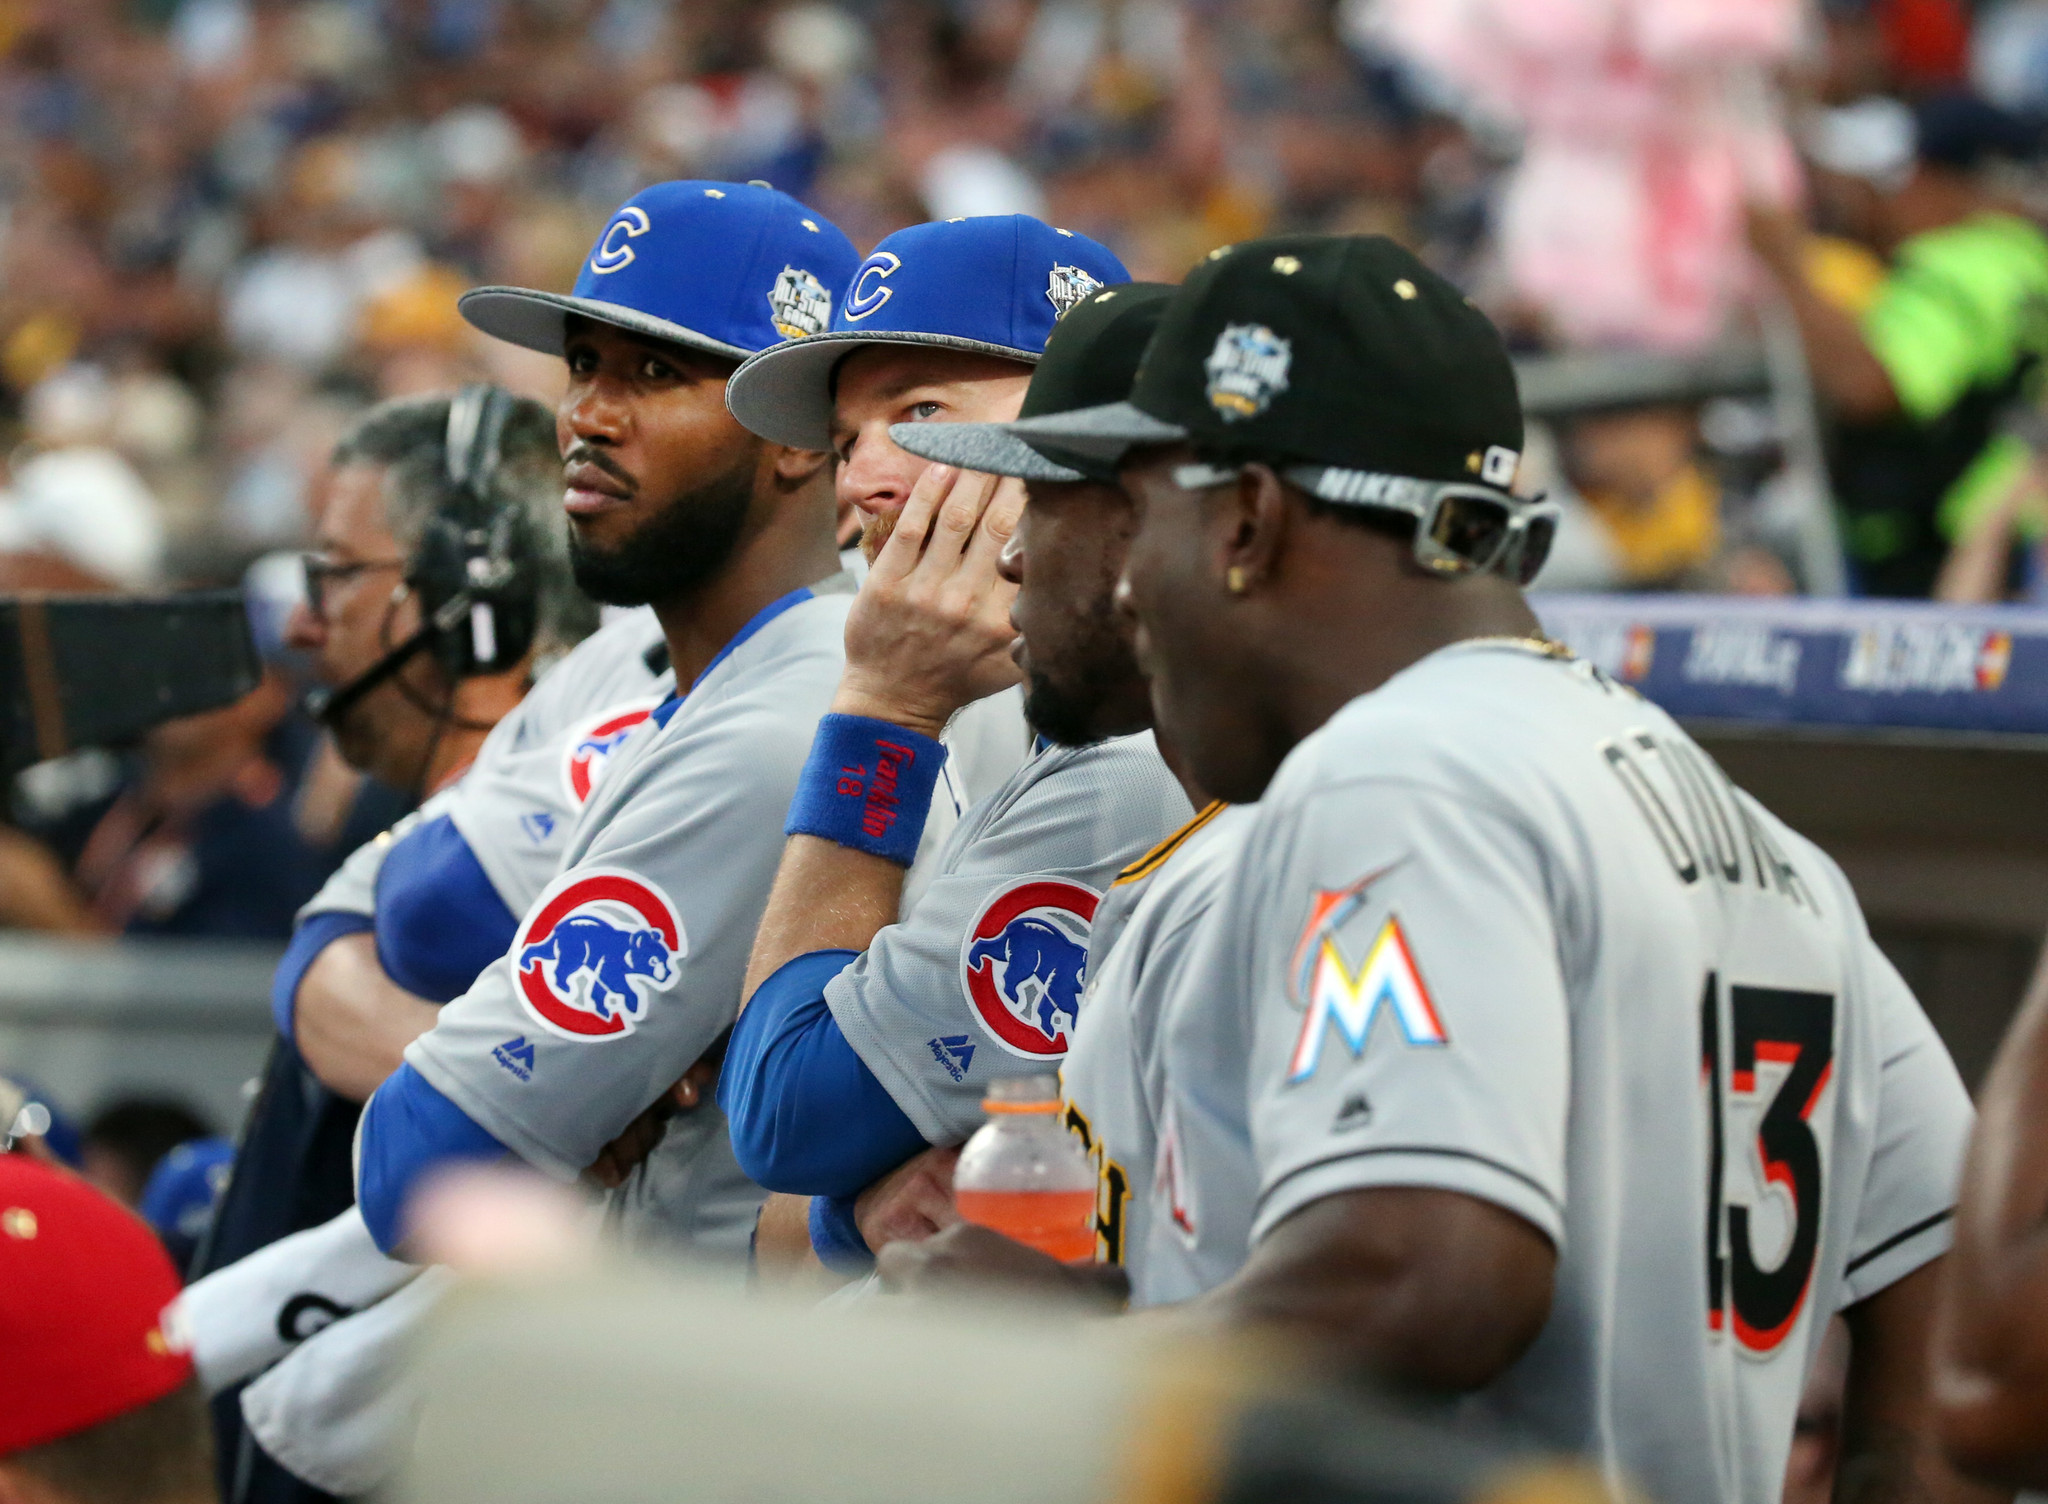 Ct-cubs-weight-spt-0715-20160714